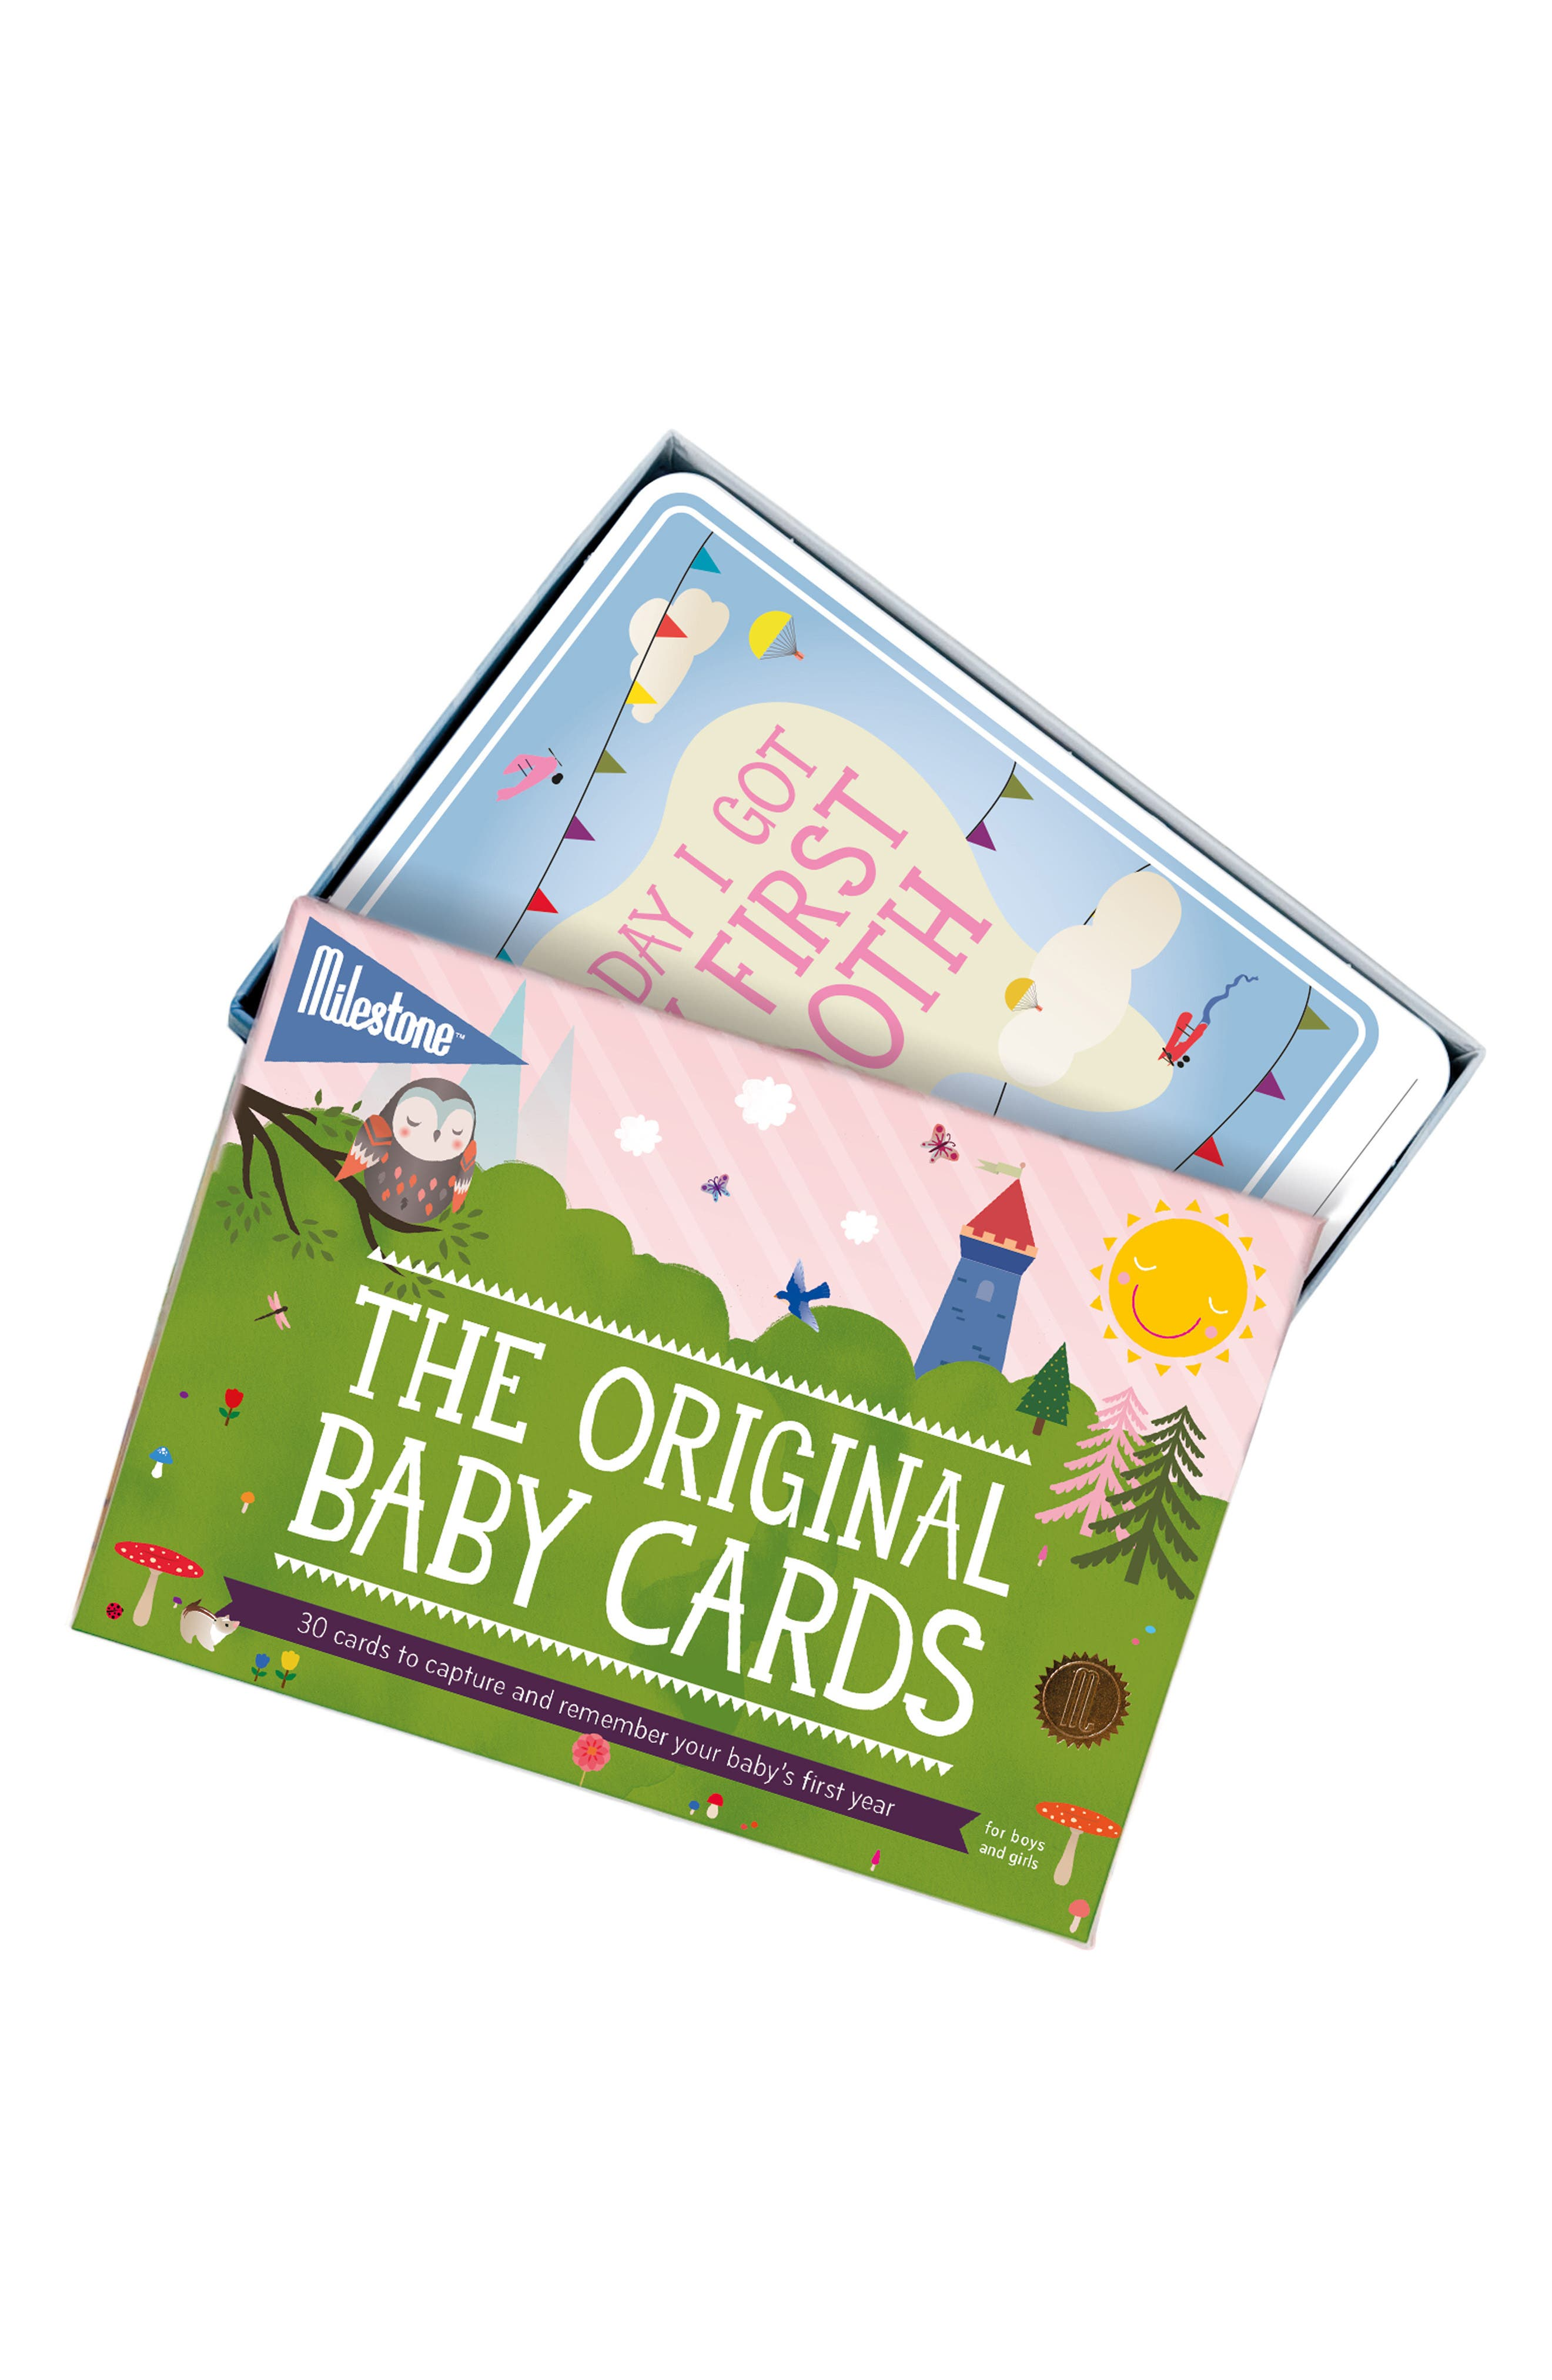 Milestone Baby Cards Illustrated Cards (Set of 30)